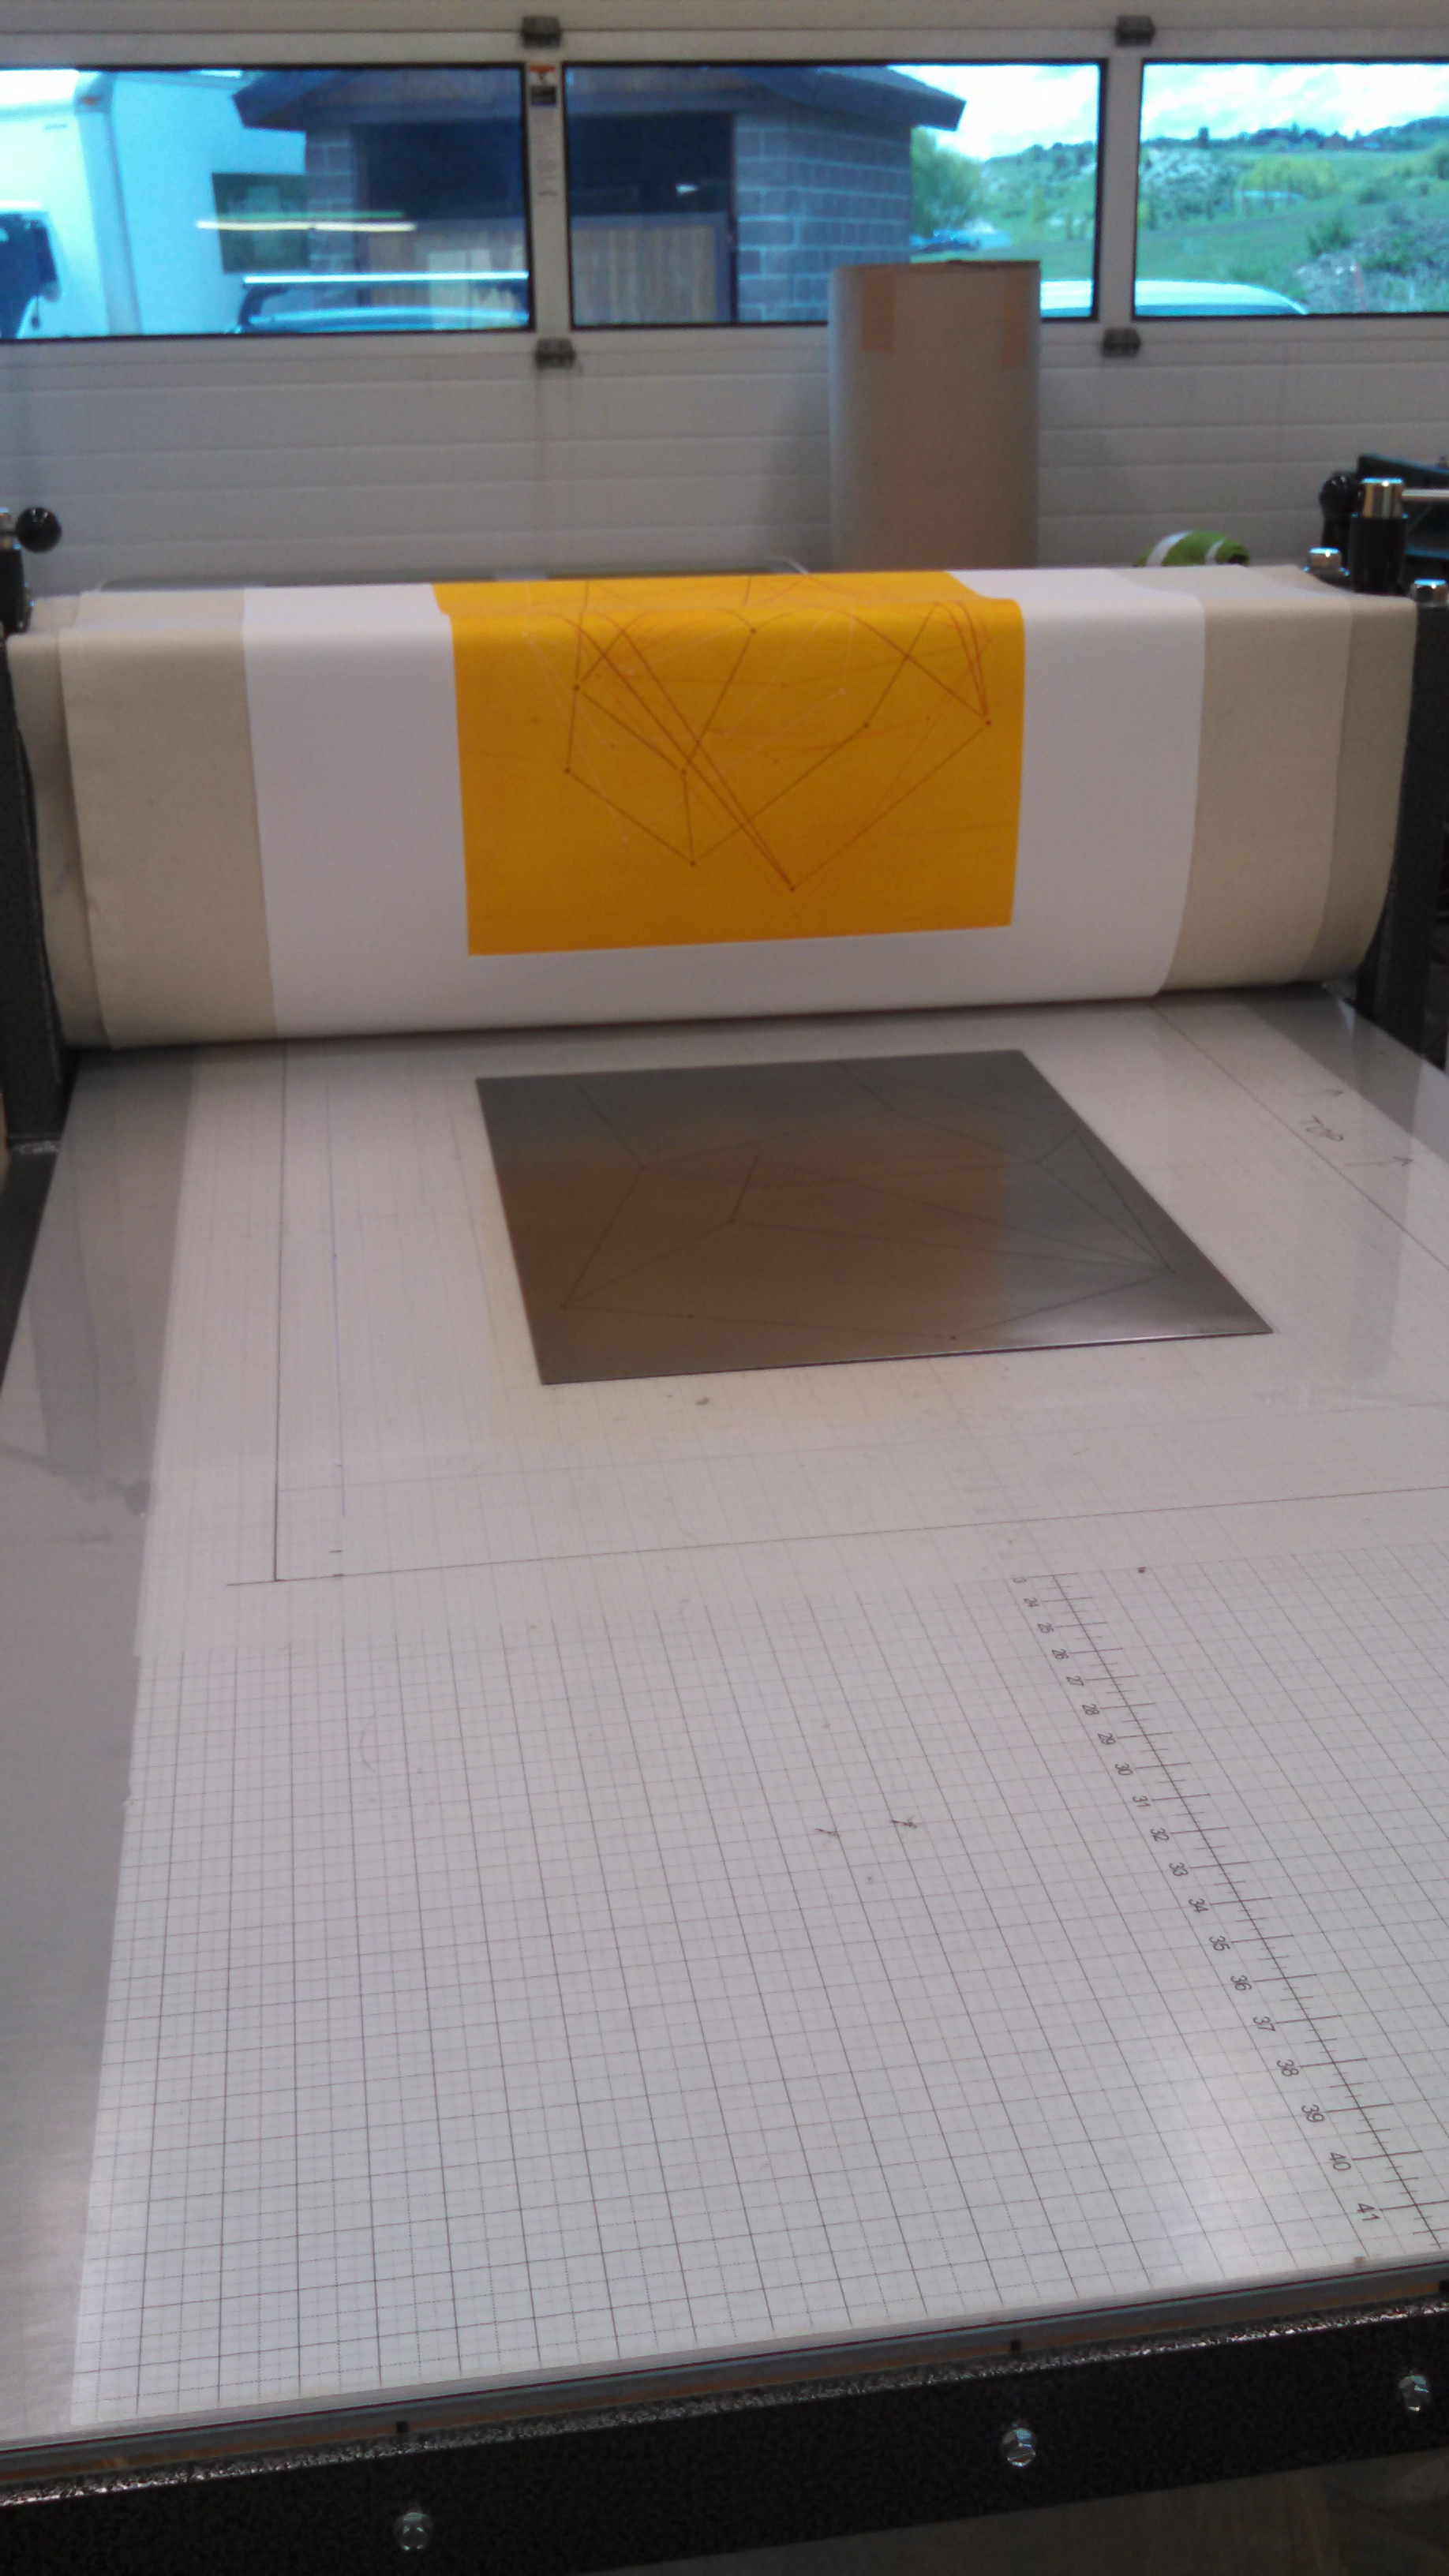 About to print the 4th plate.